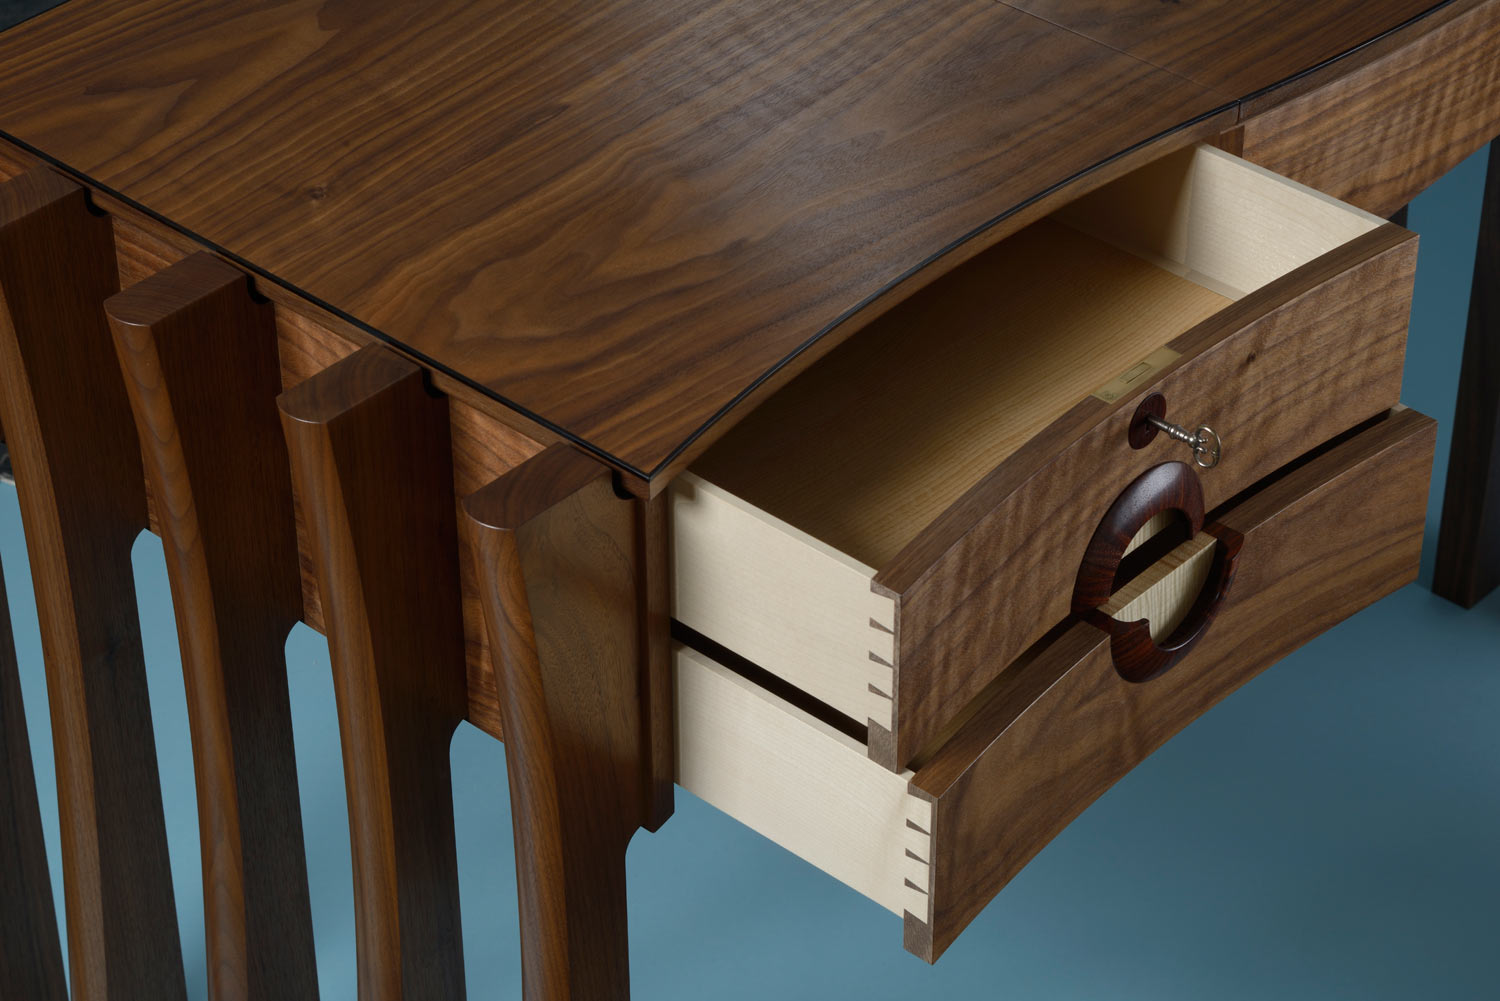 Annies dressing table drawers